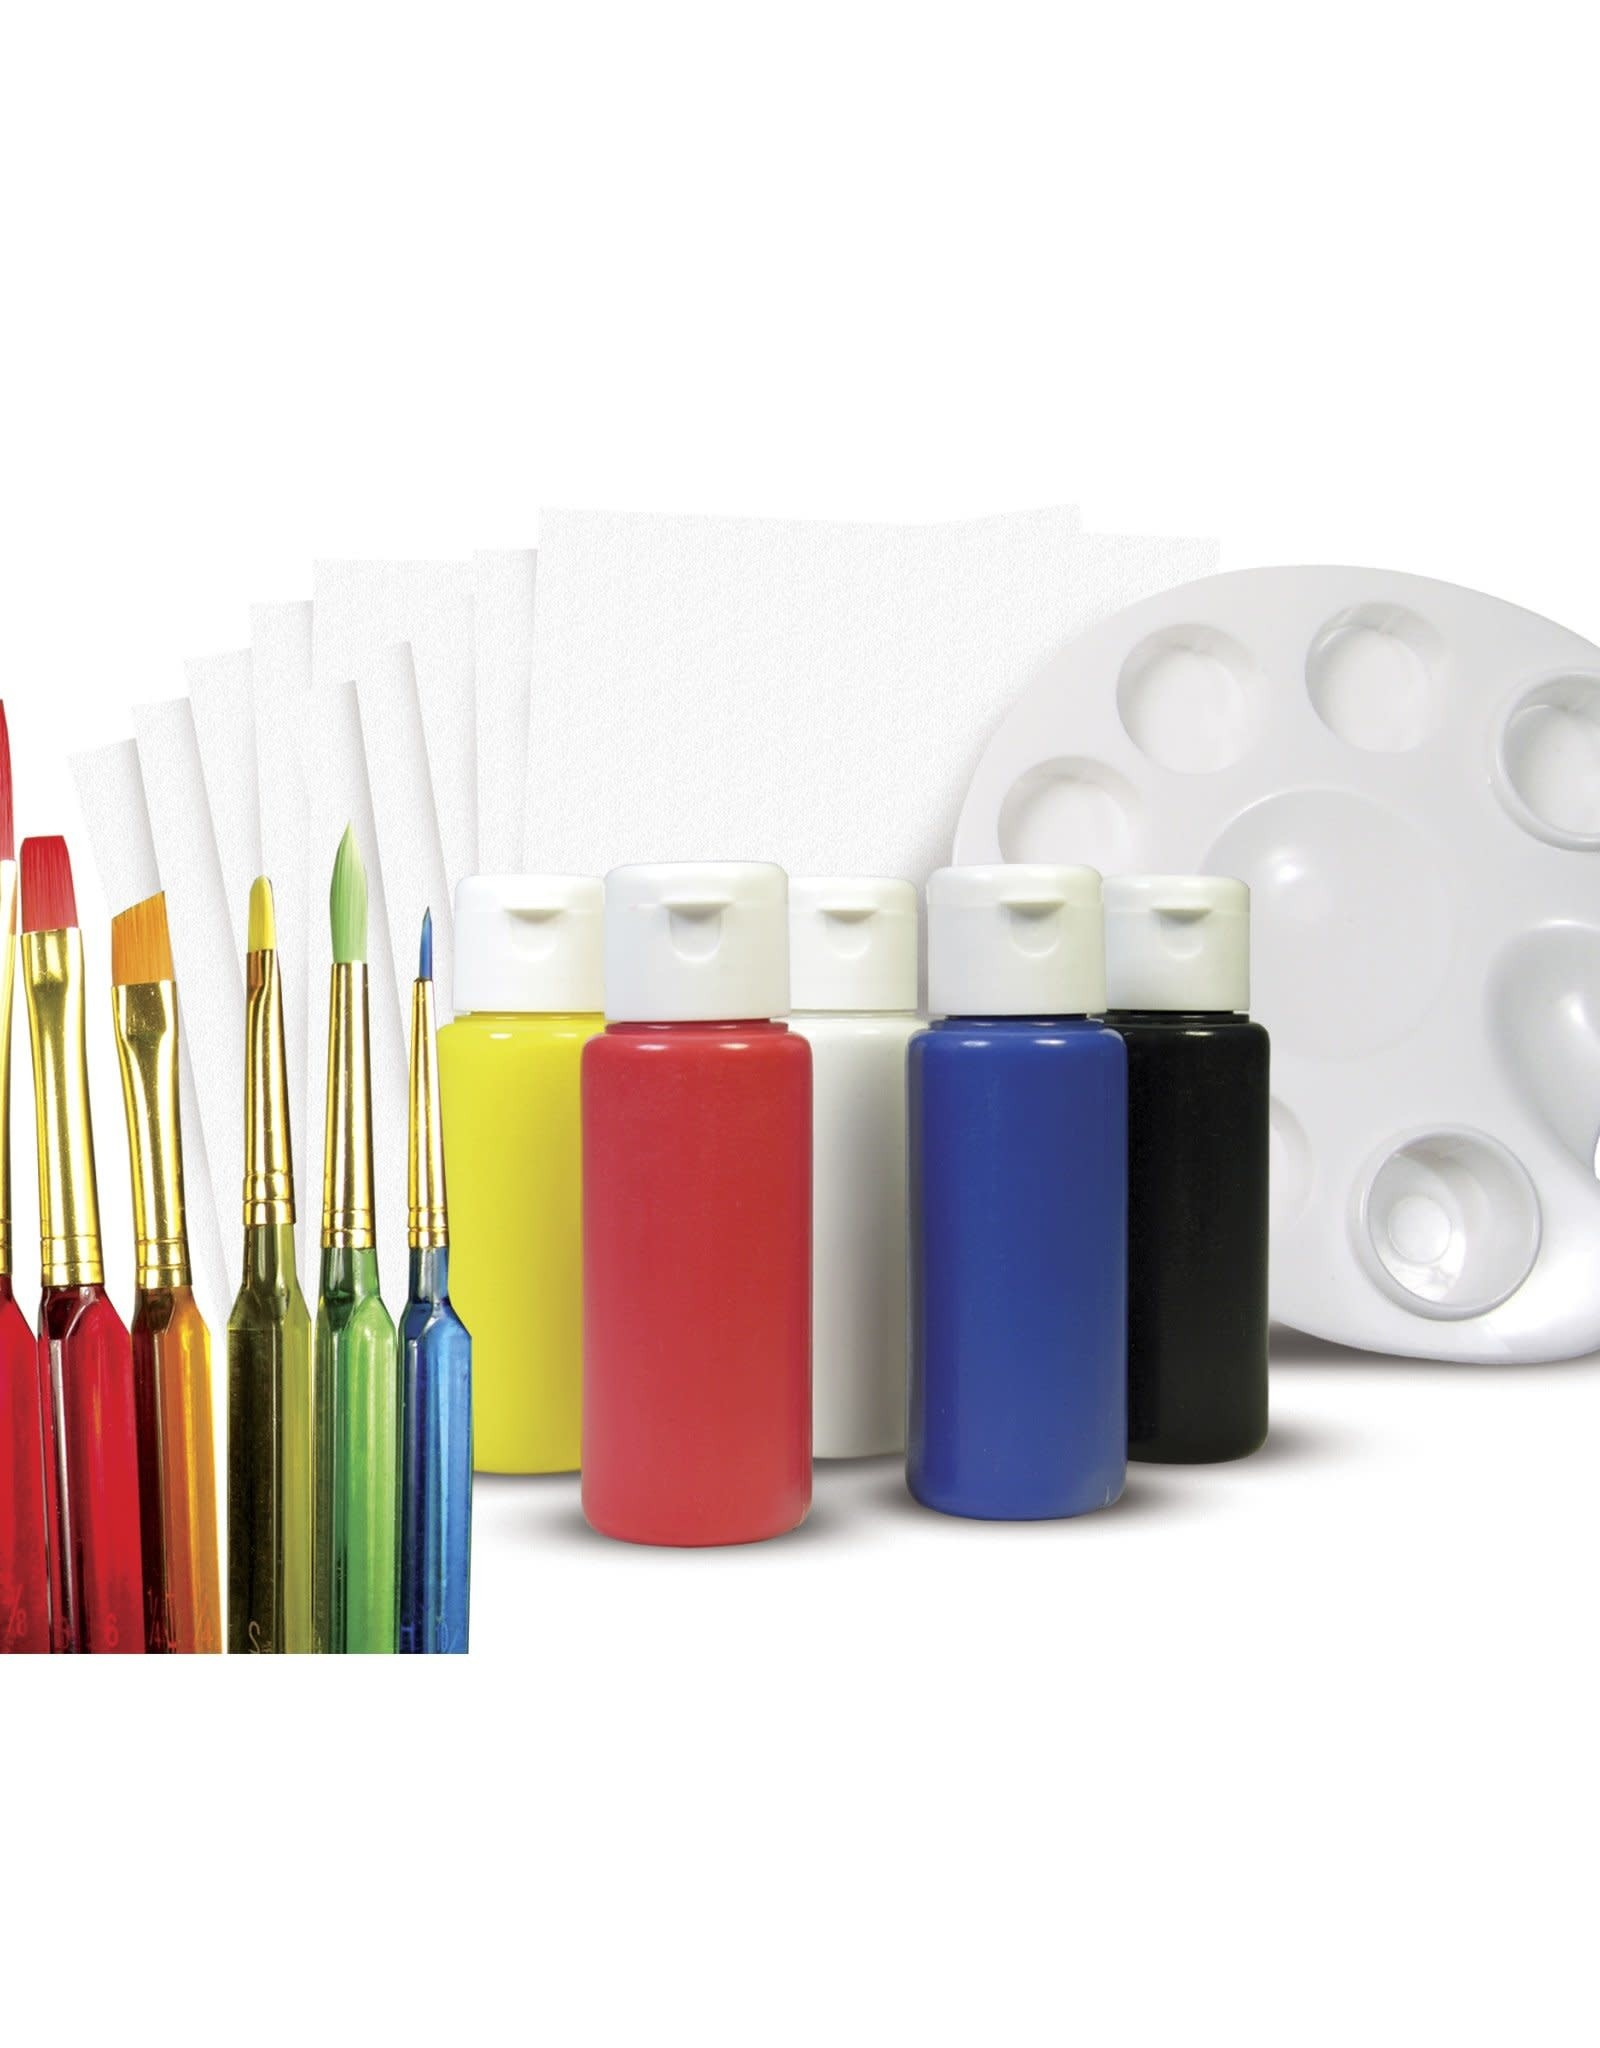 Faber-Castell Art Kit Learn to Paint